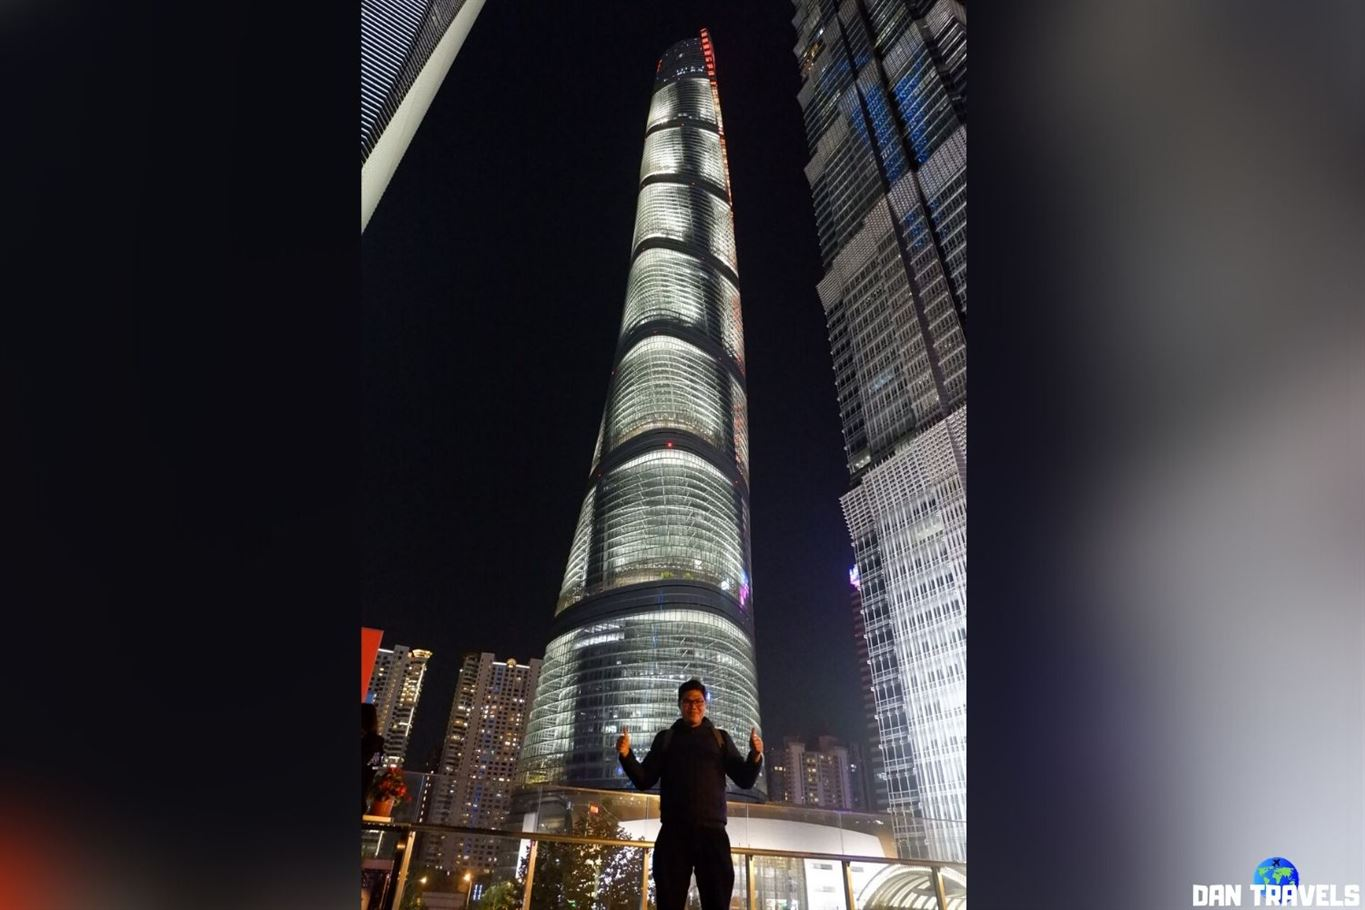 Day 7: Shanghai Tower behind me.